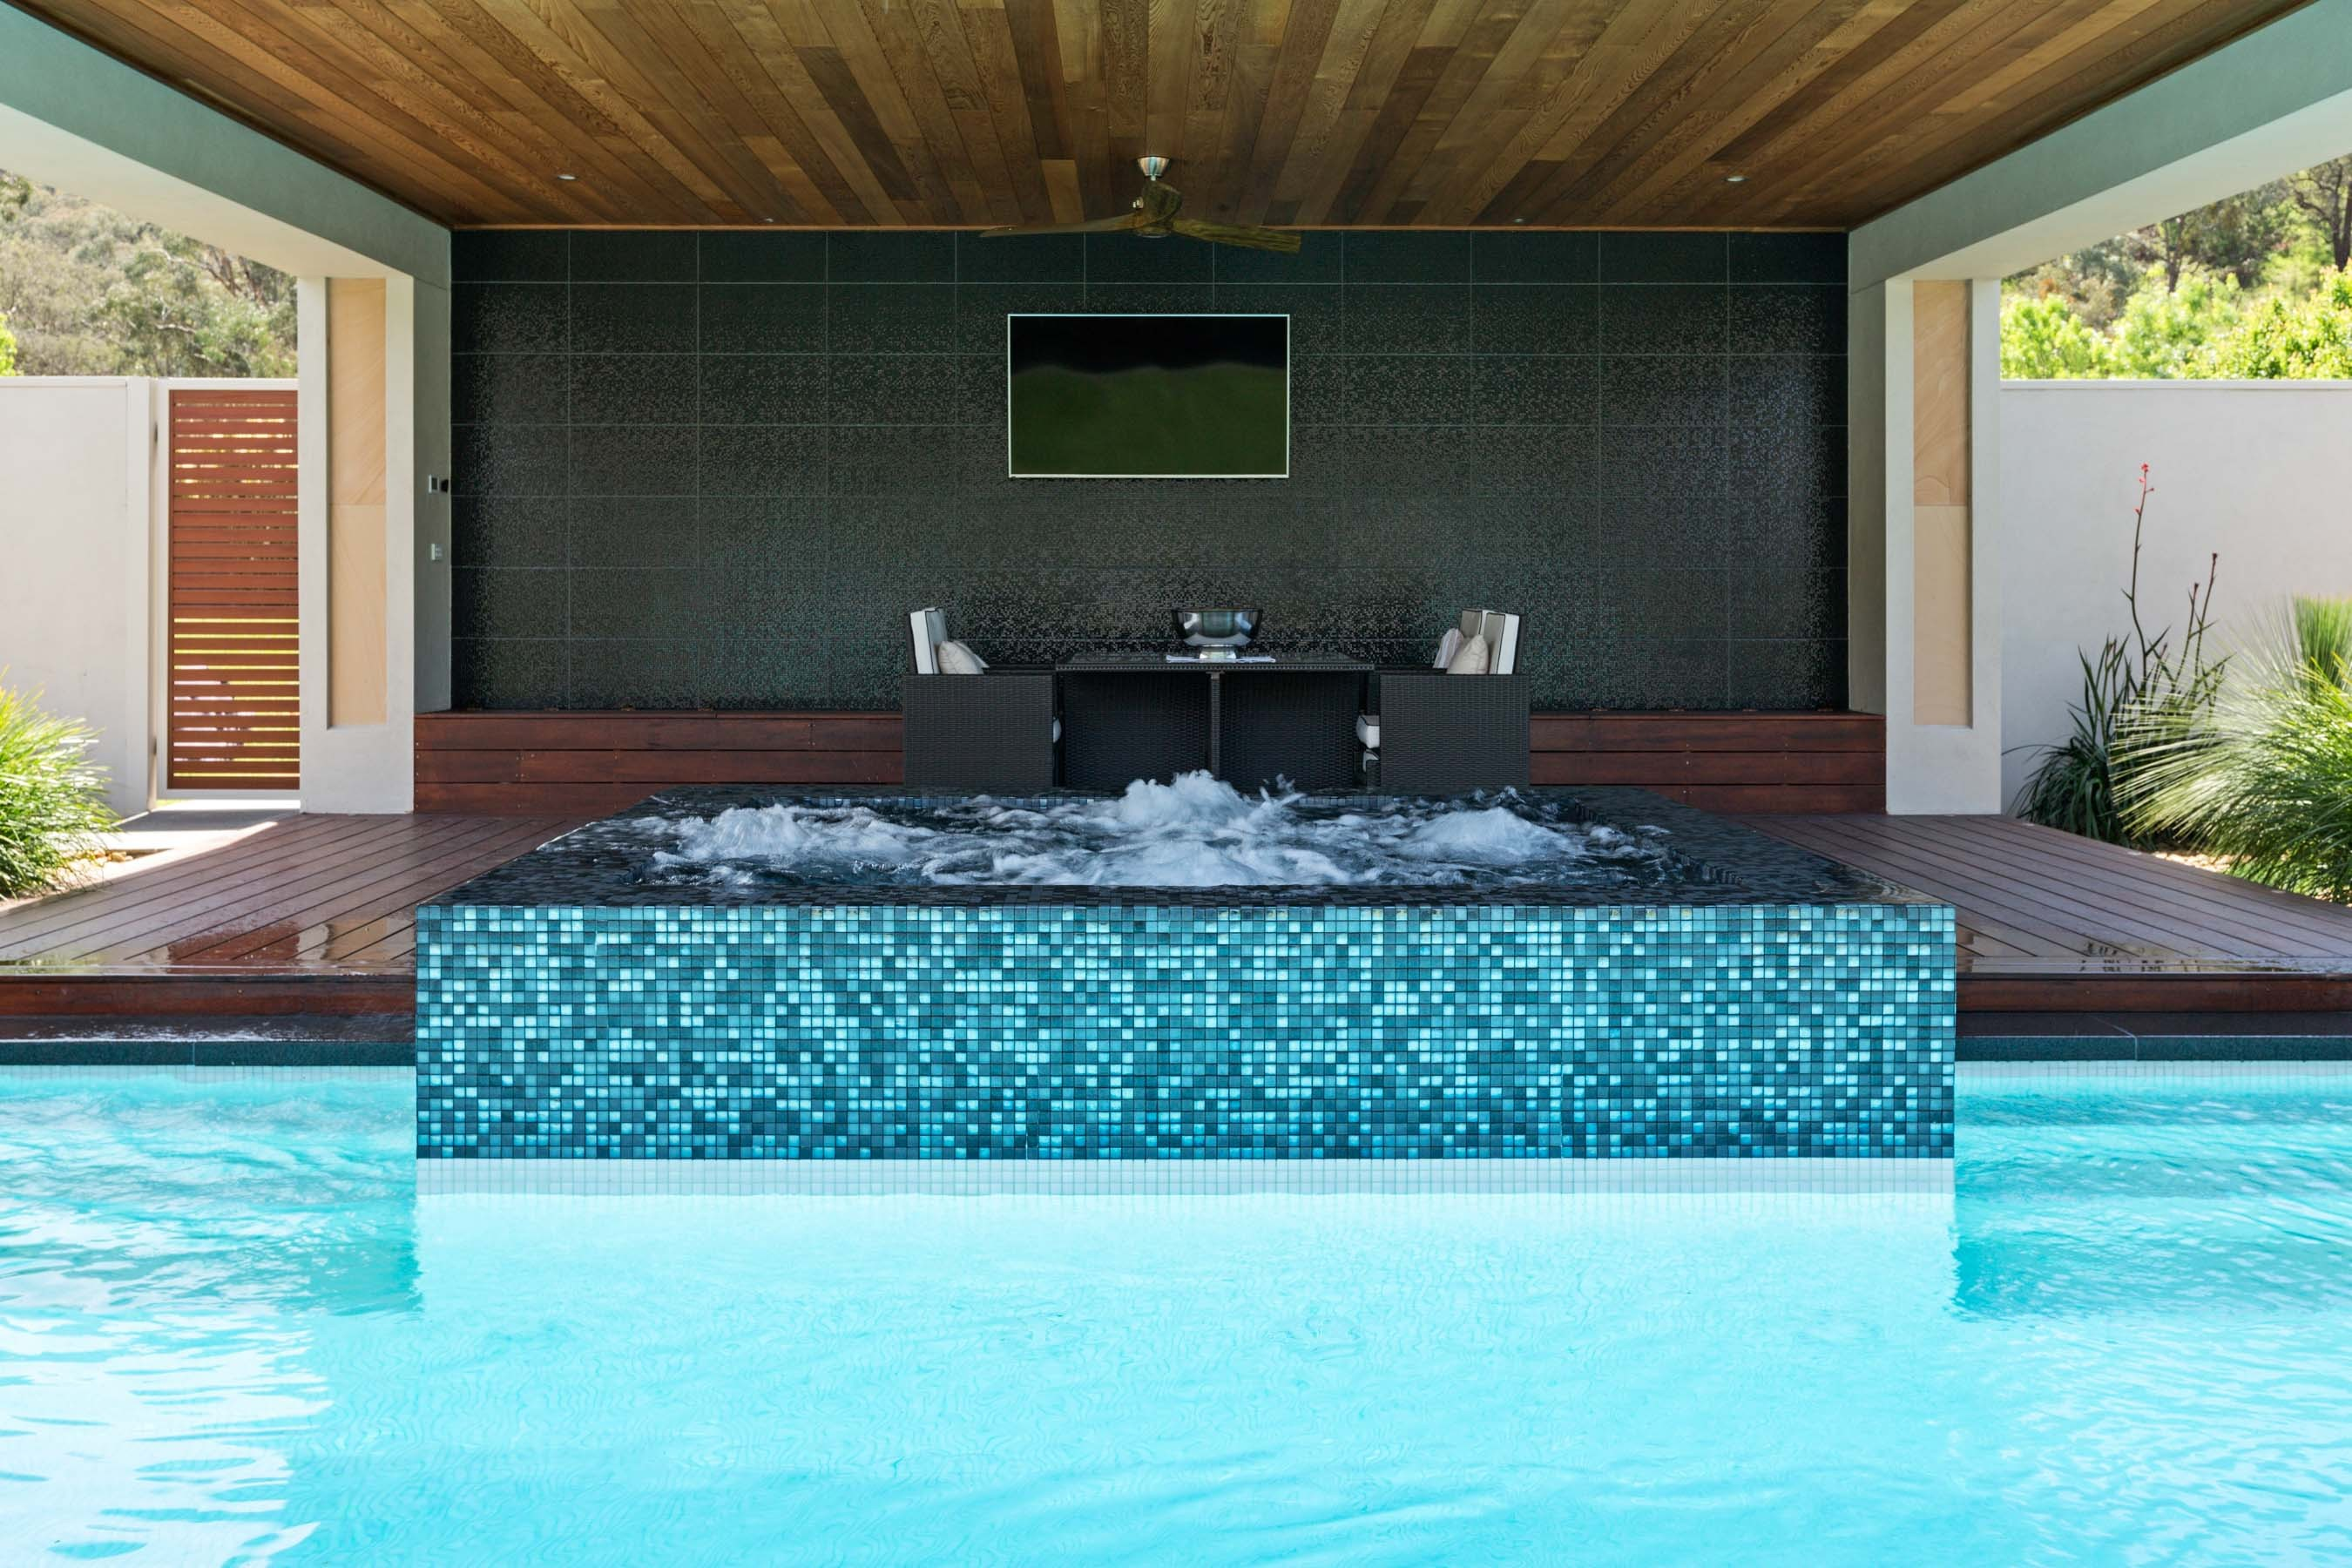 Pool-Tiles Gallery Luxe eclipse-02